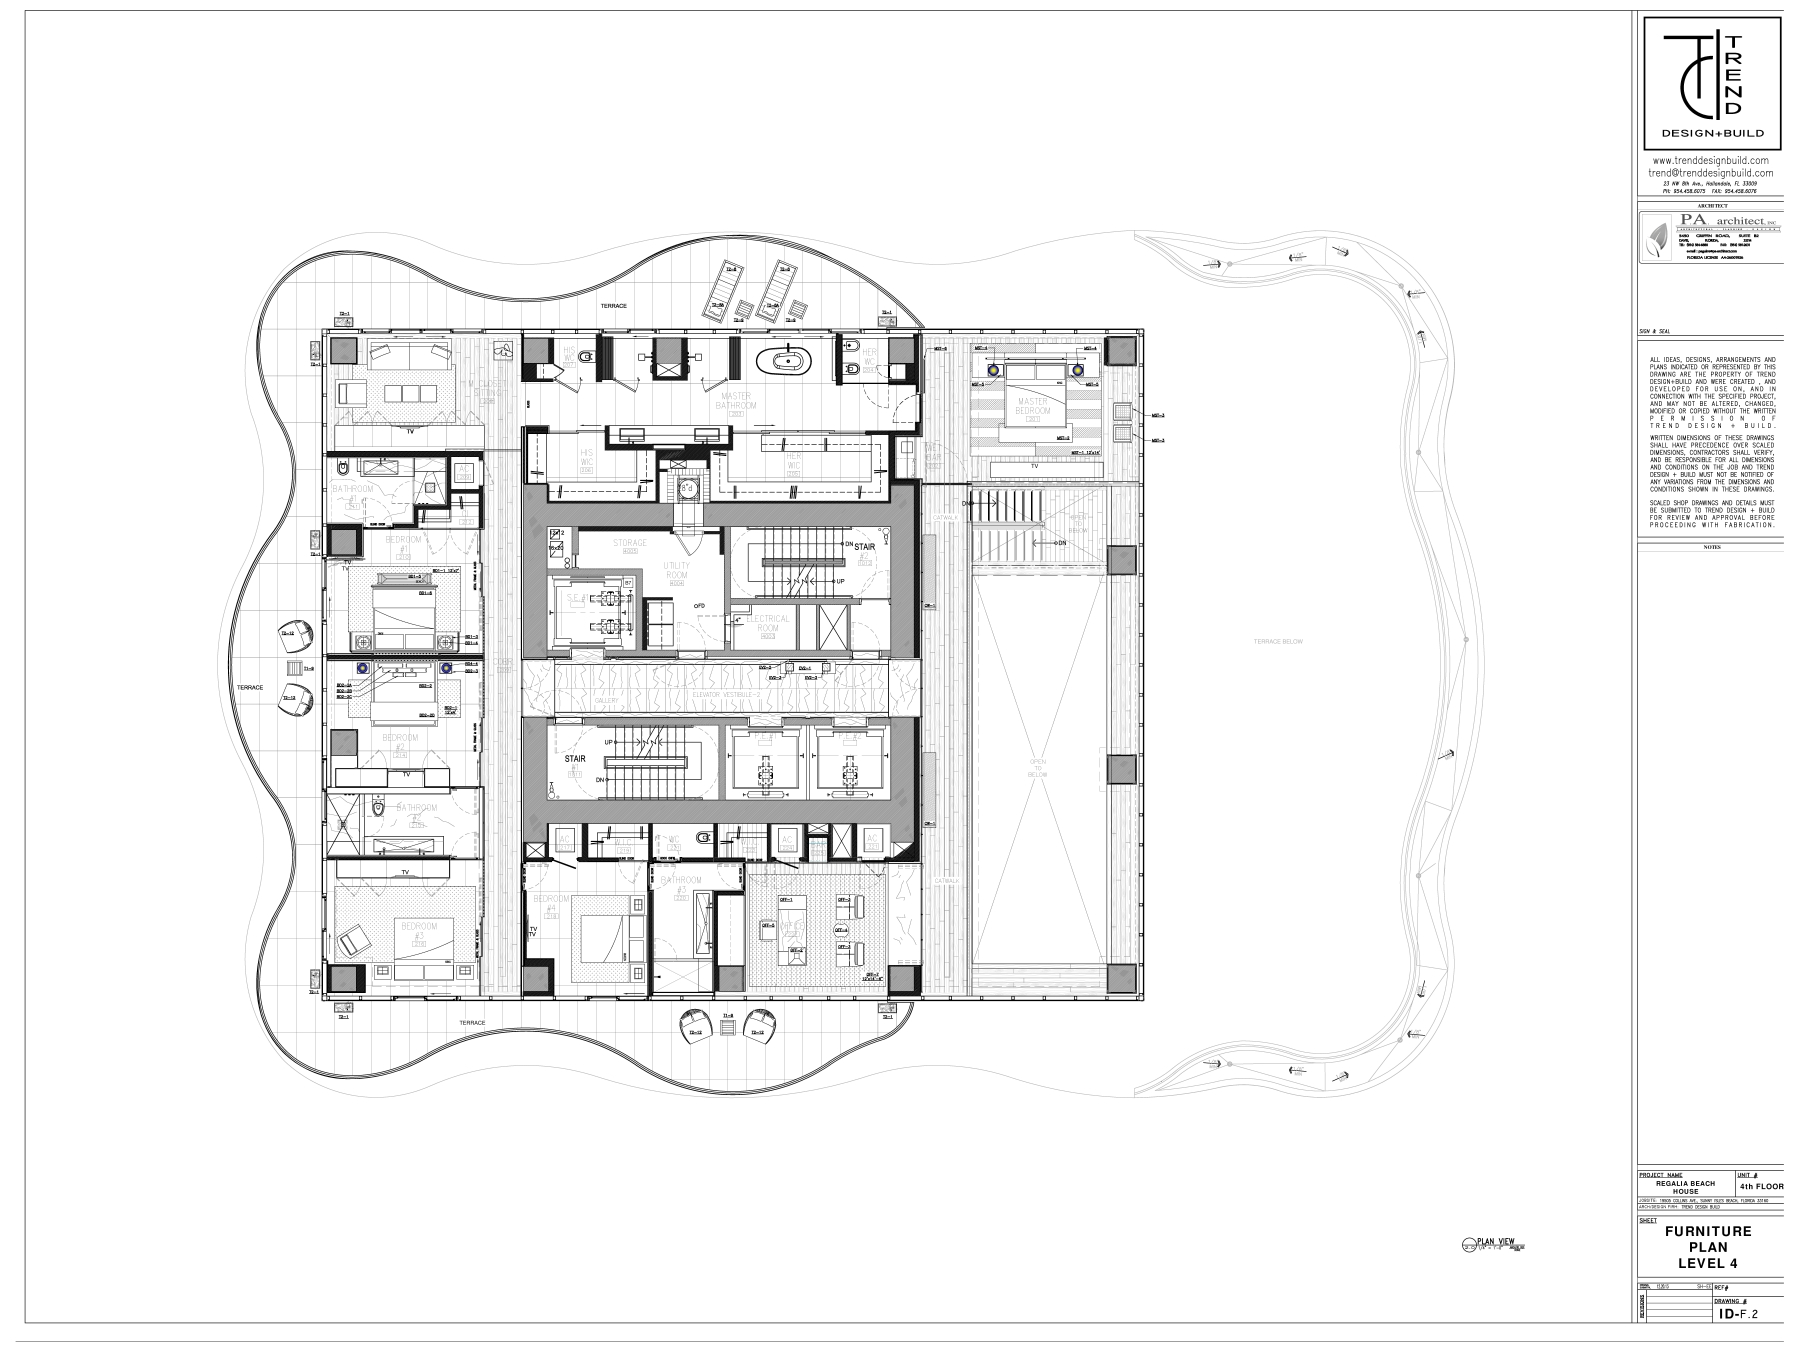 Beach house floor plan trend page 1800 1350 for Duplex beach house plans